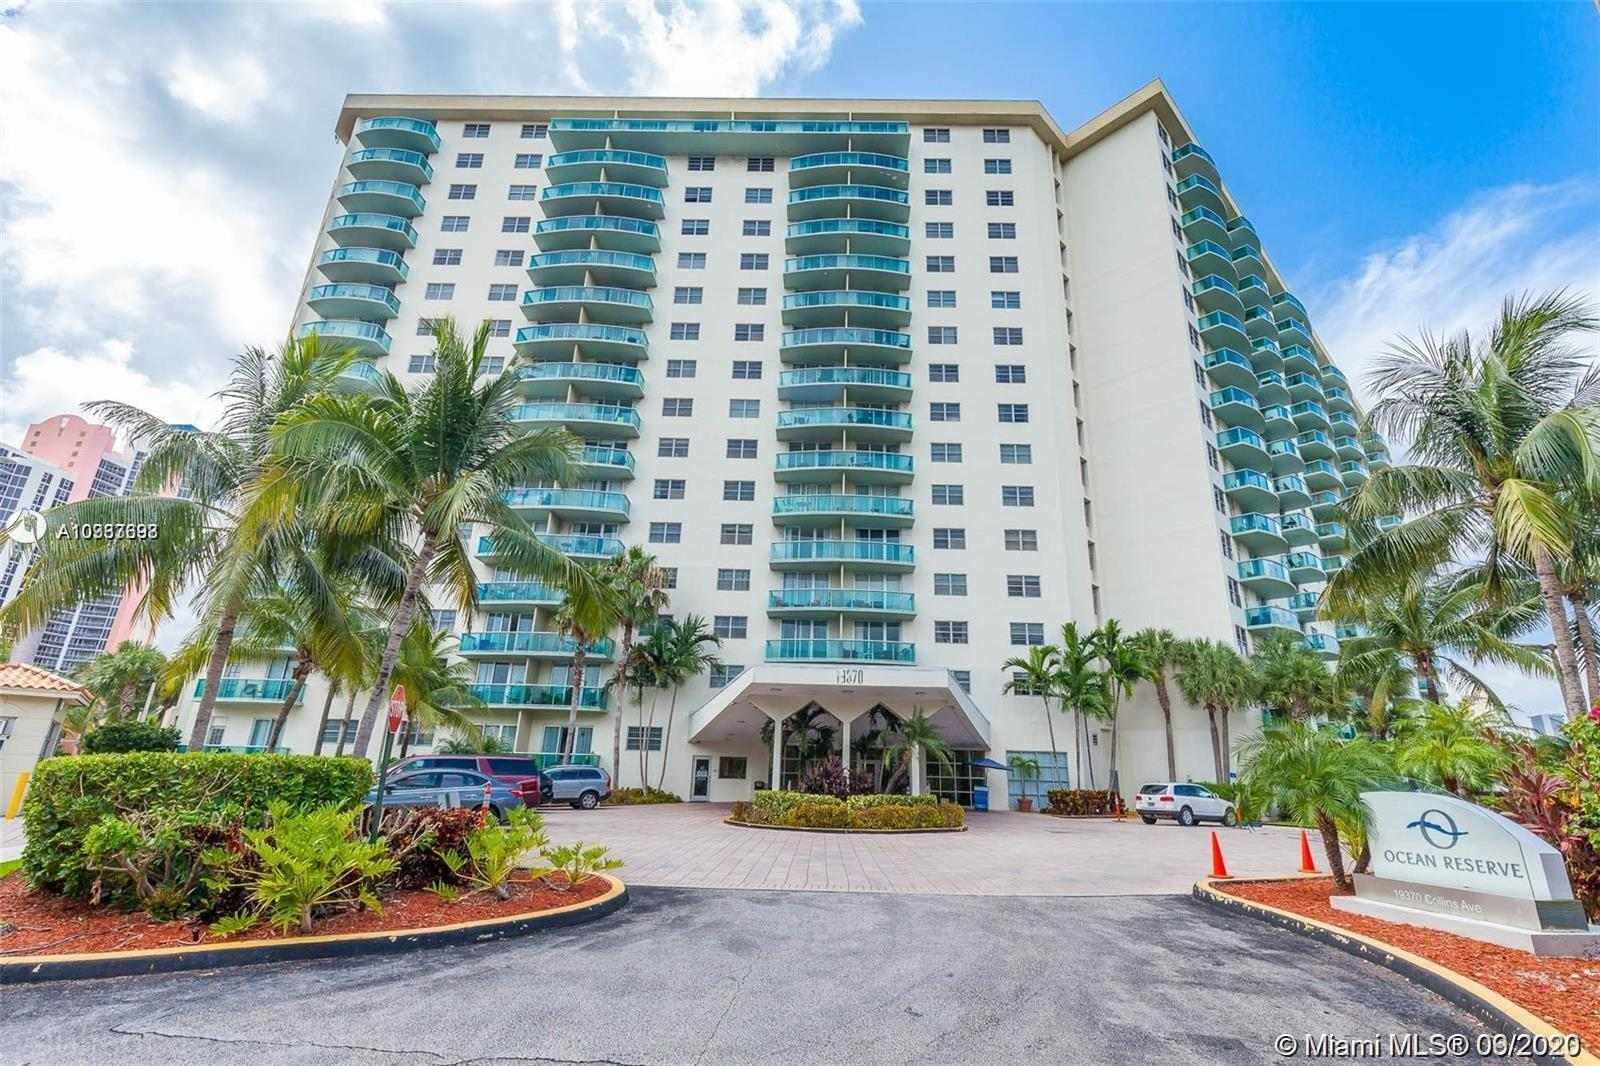 Ocean Reserve #222 - 19370 Collins Ave #222, Sunny Isles Beach, FL 33160